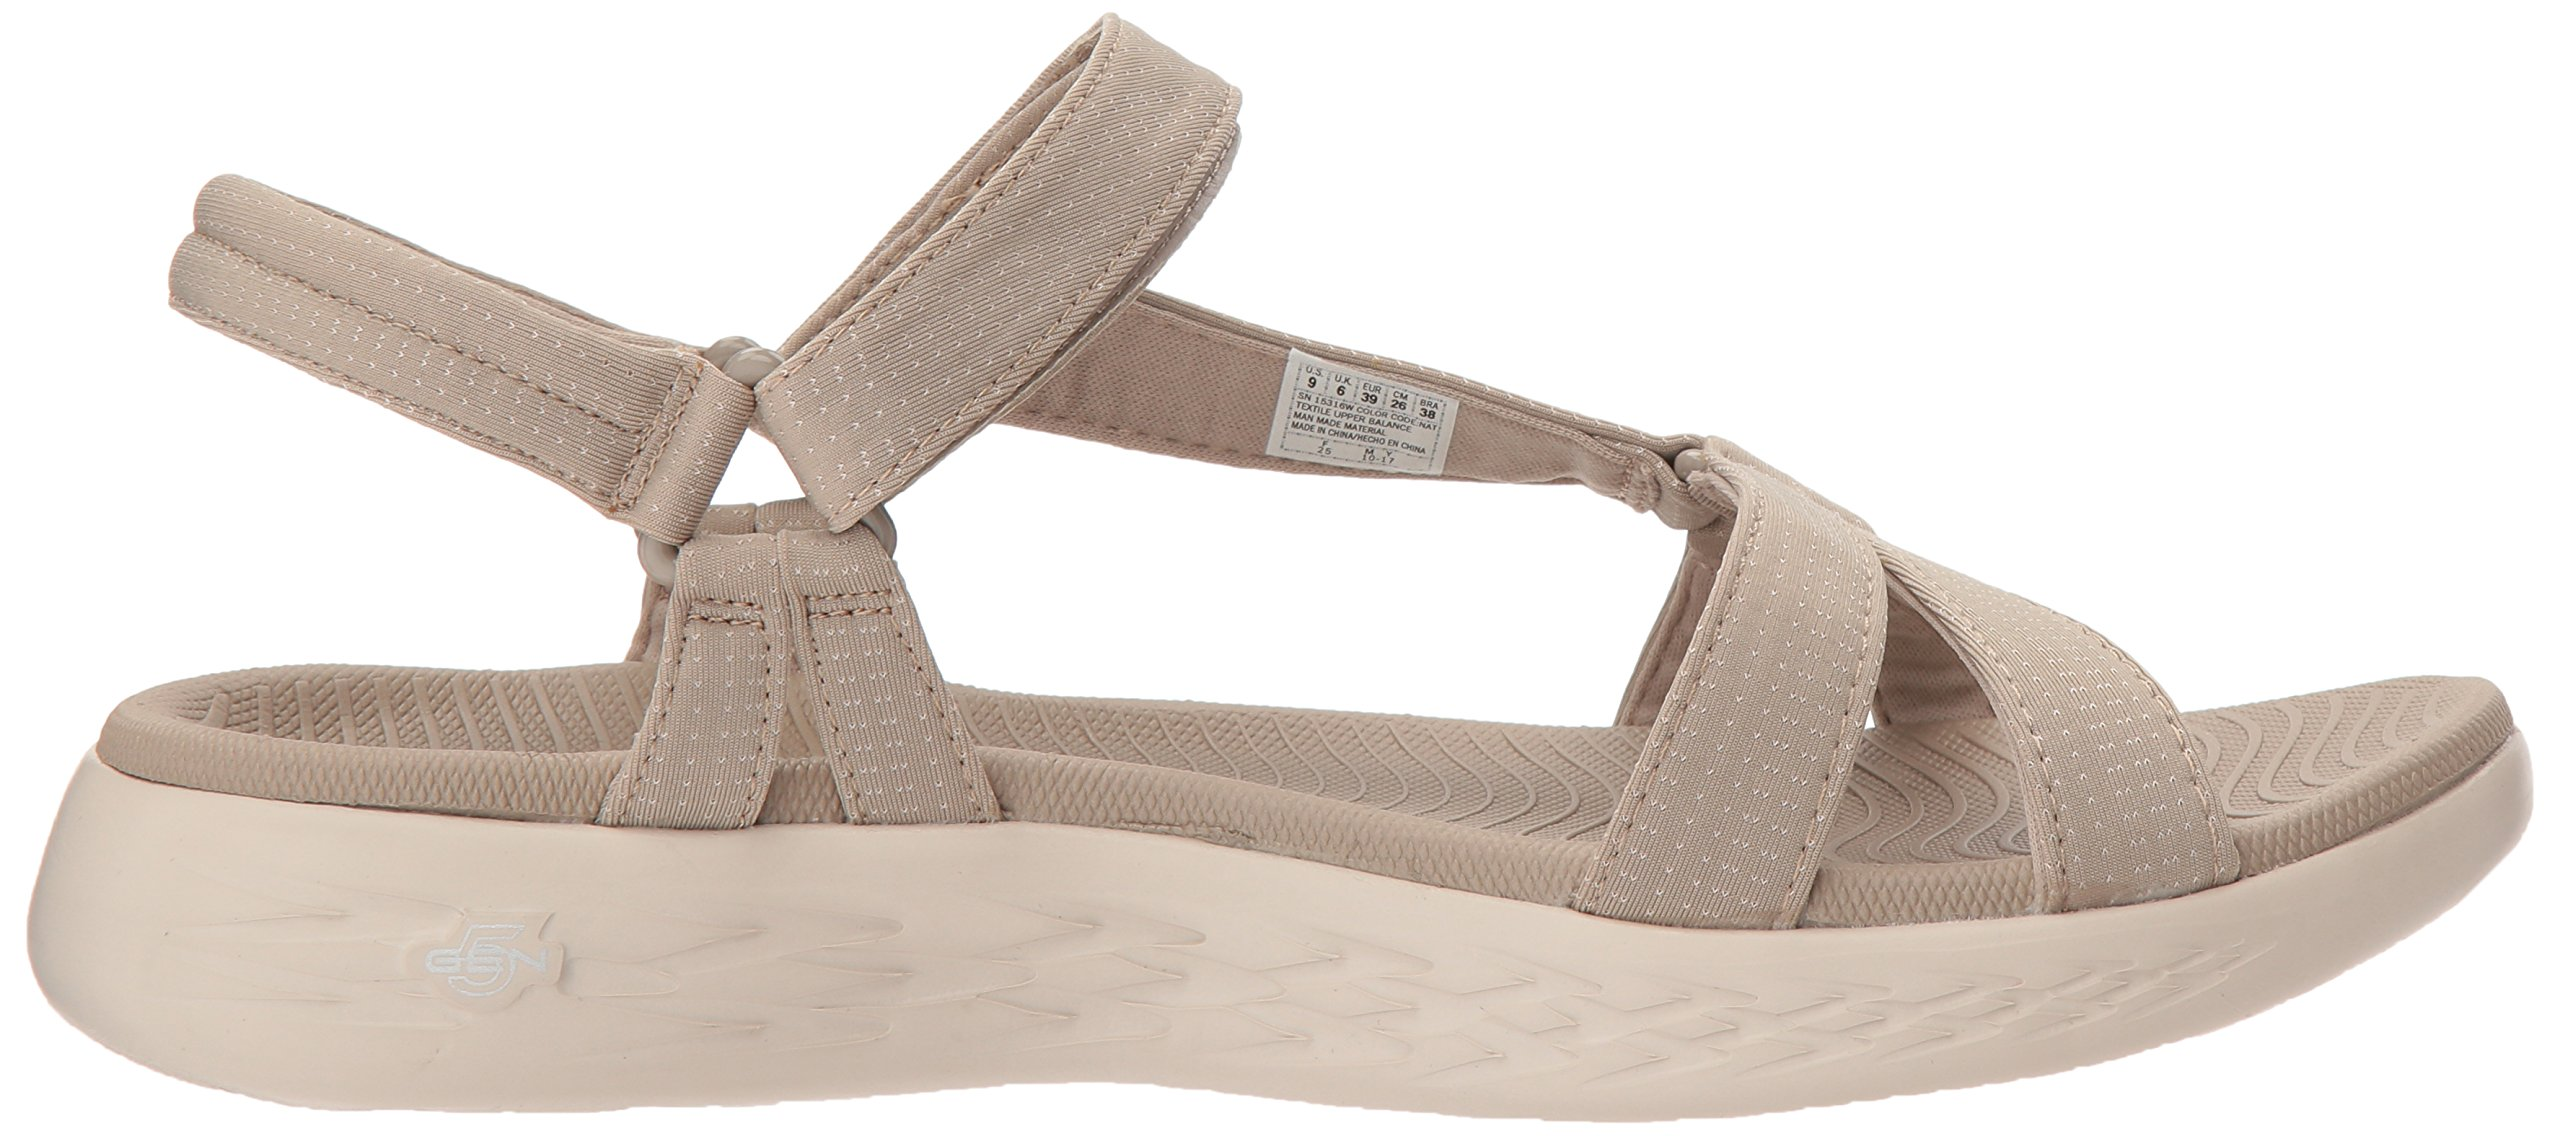 Skechers Performance Women's on-The-Go 600-Brilliancy Wide Sport Sandal,Natural,6 W US by Skechers (Image #7)